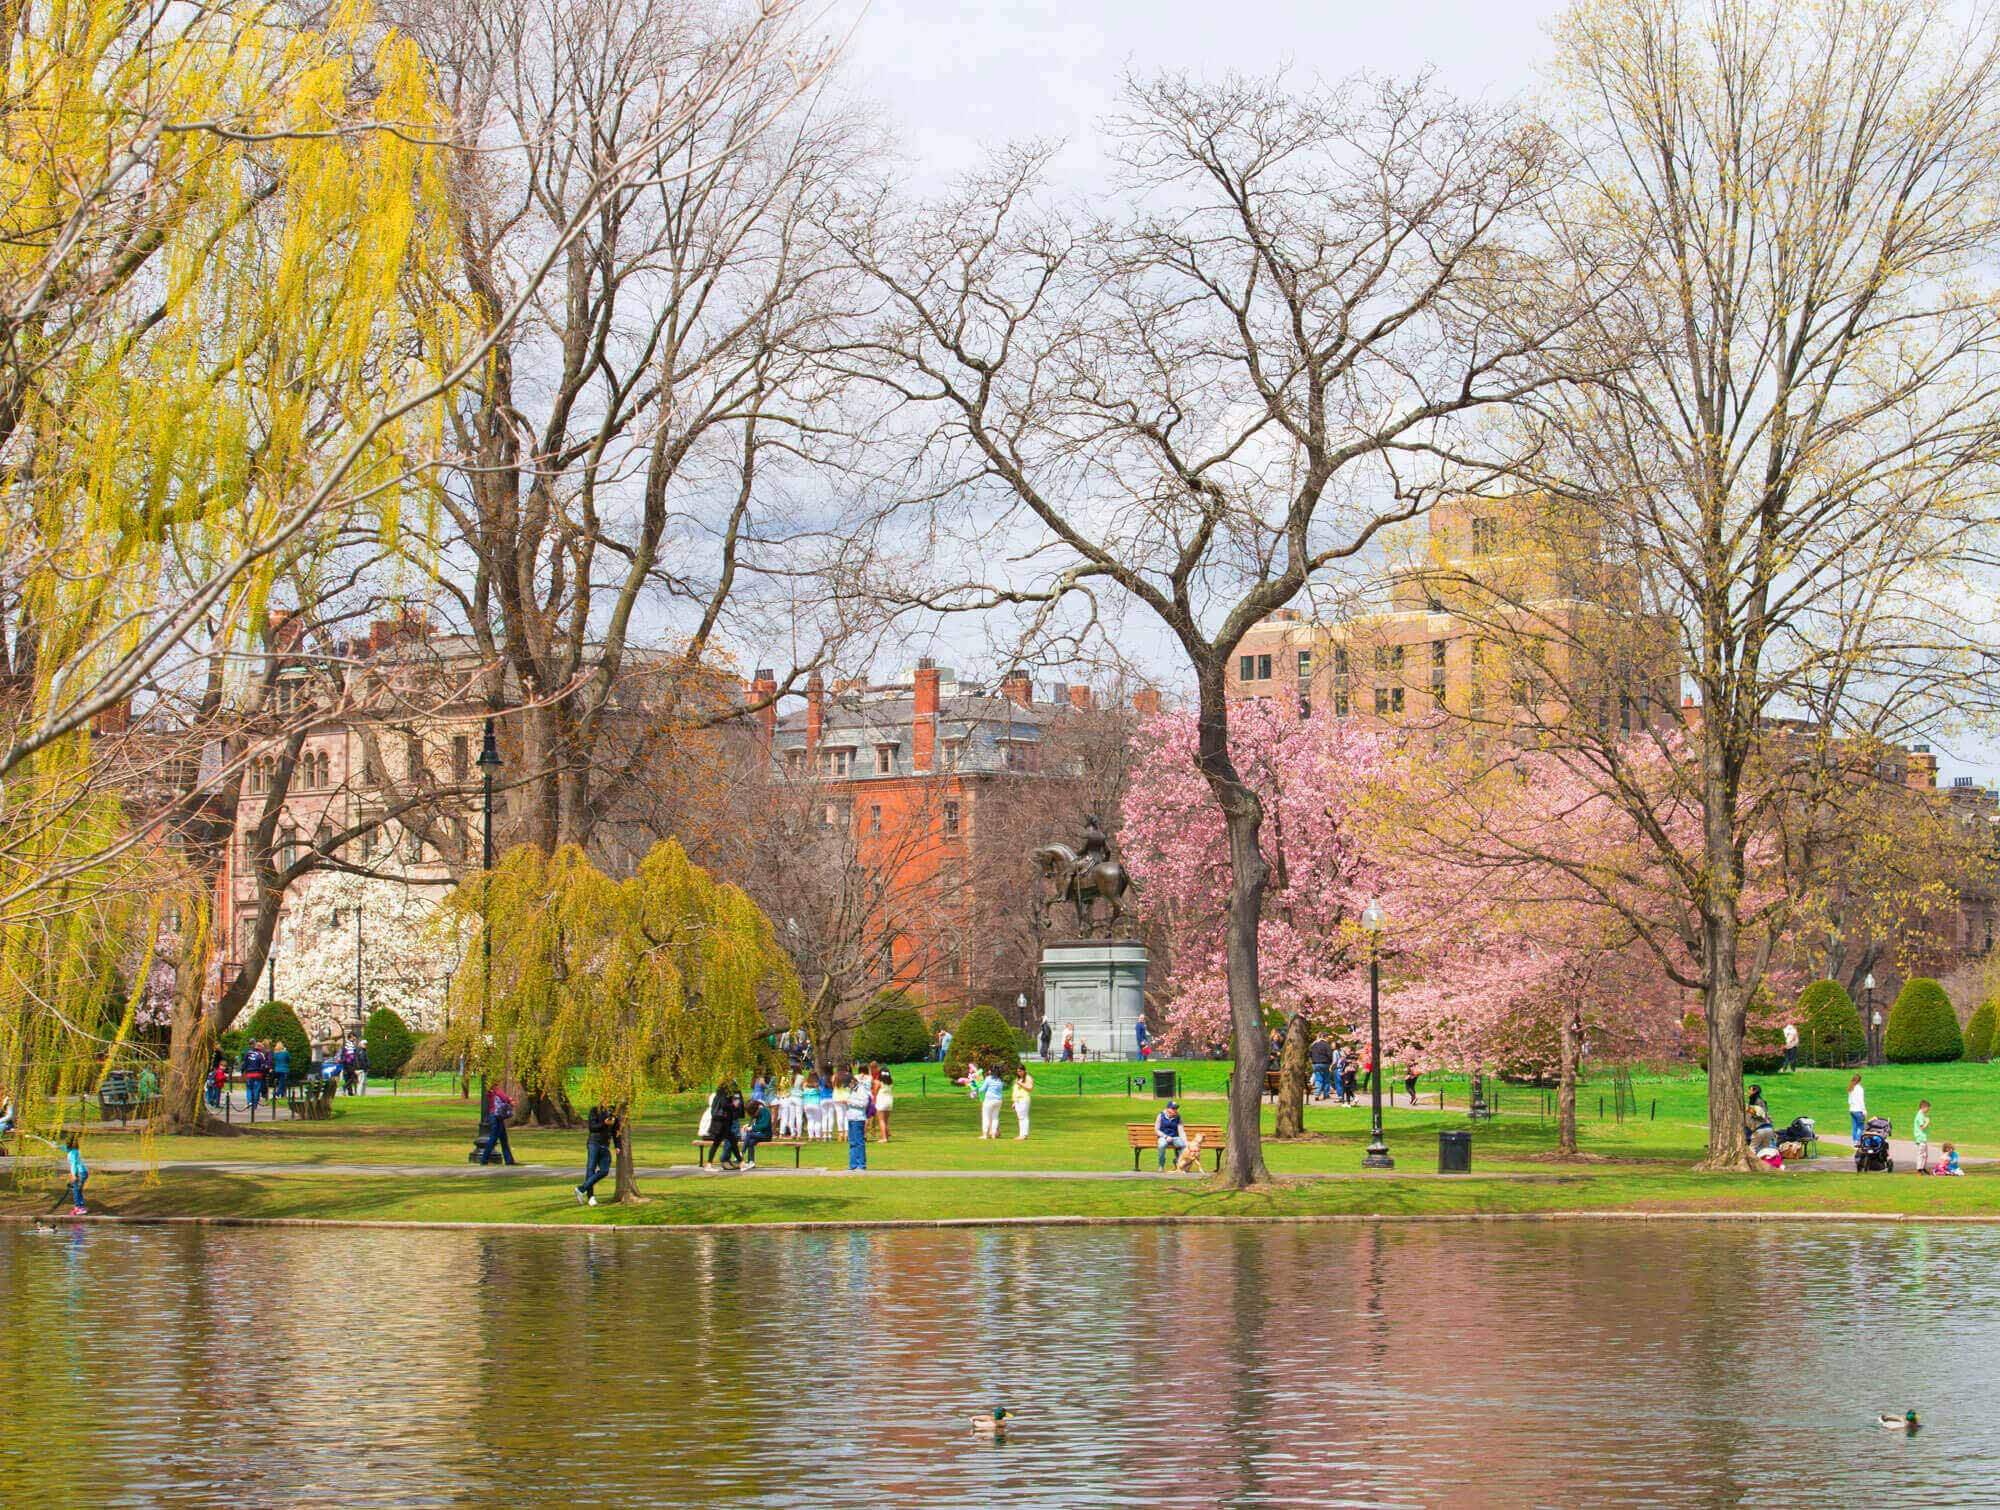 Lakeview of the Public Garden in Boston, MA with people doing various activities and a pink cherry blossom tree in the distance